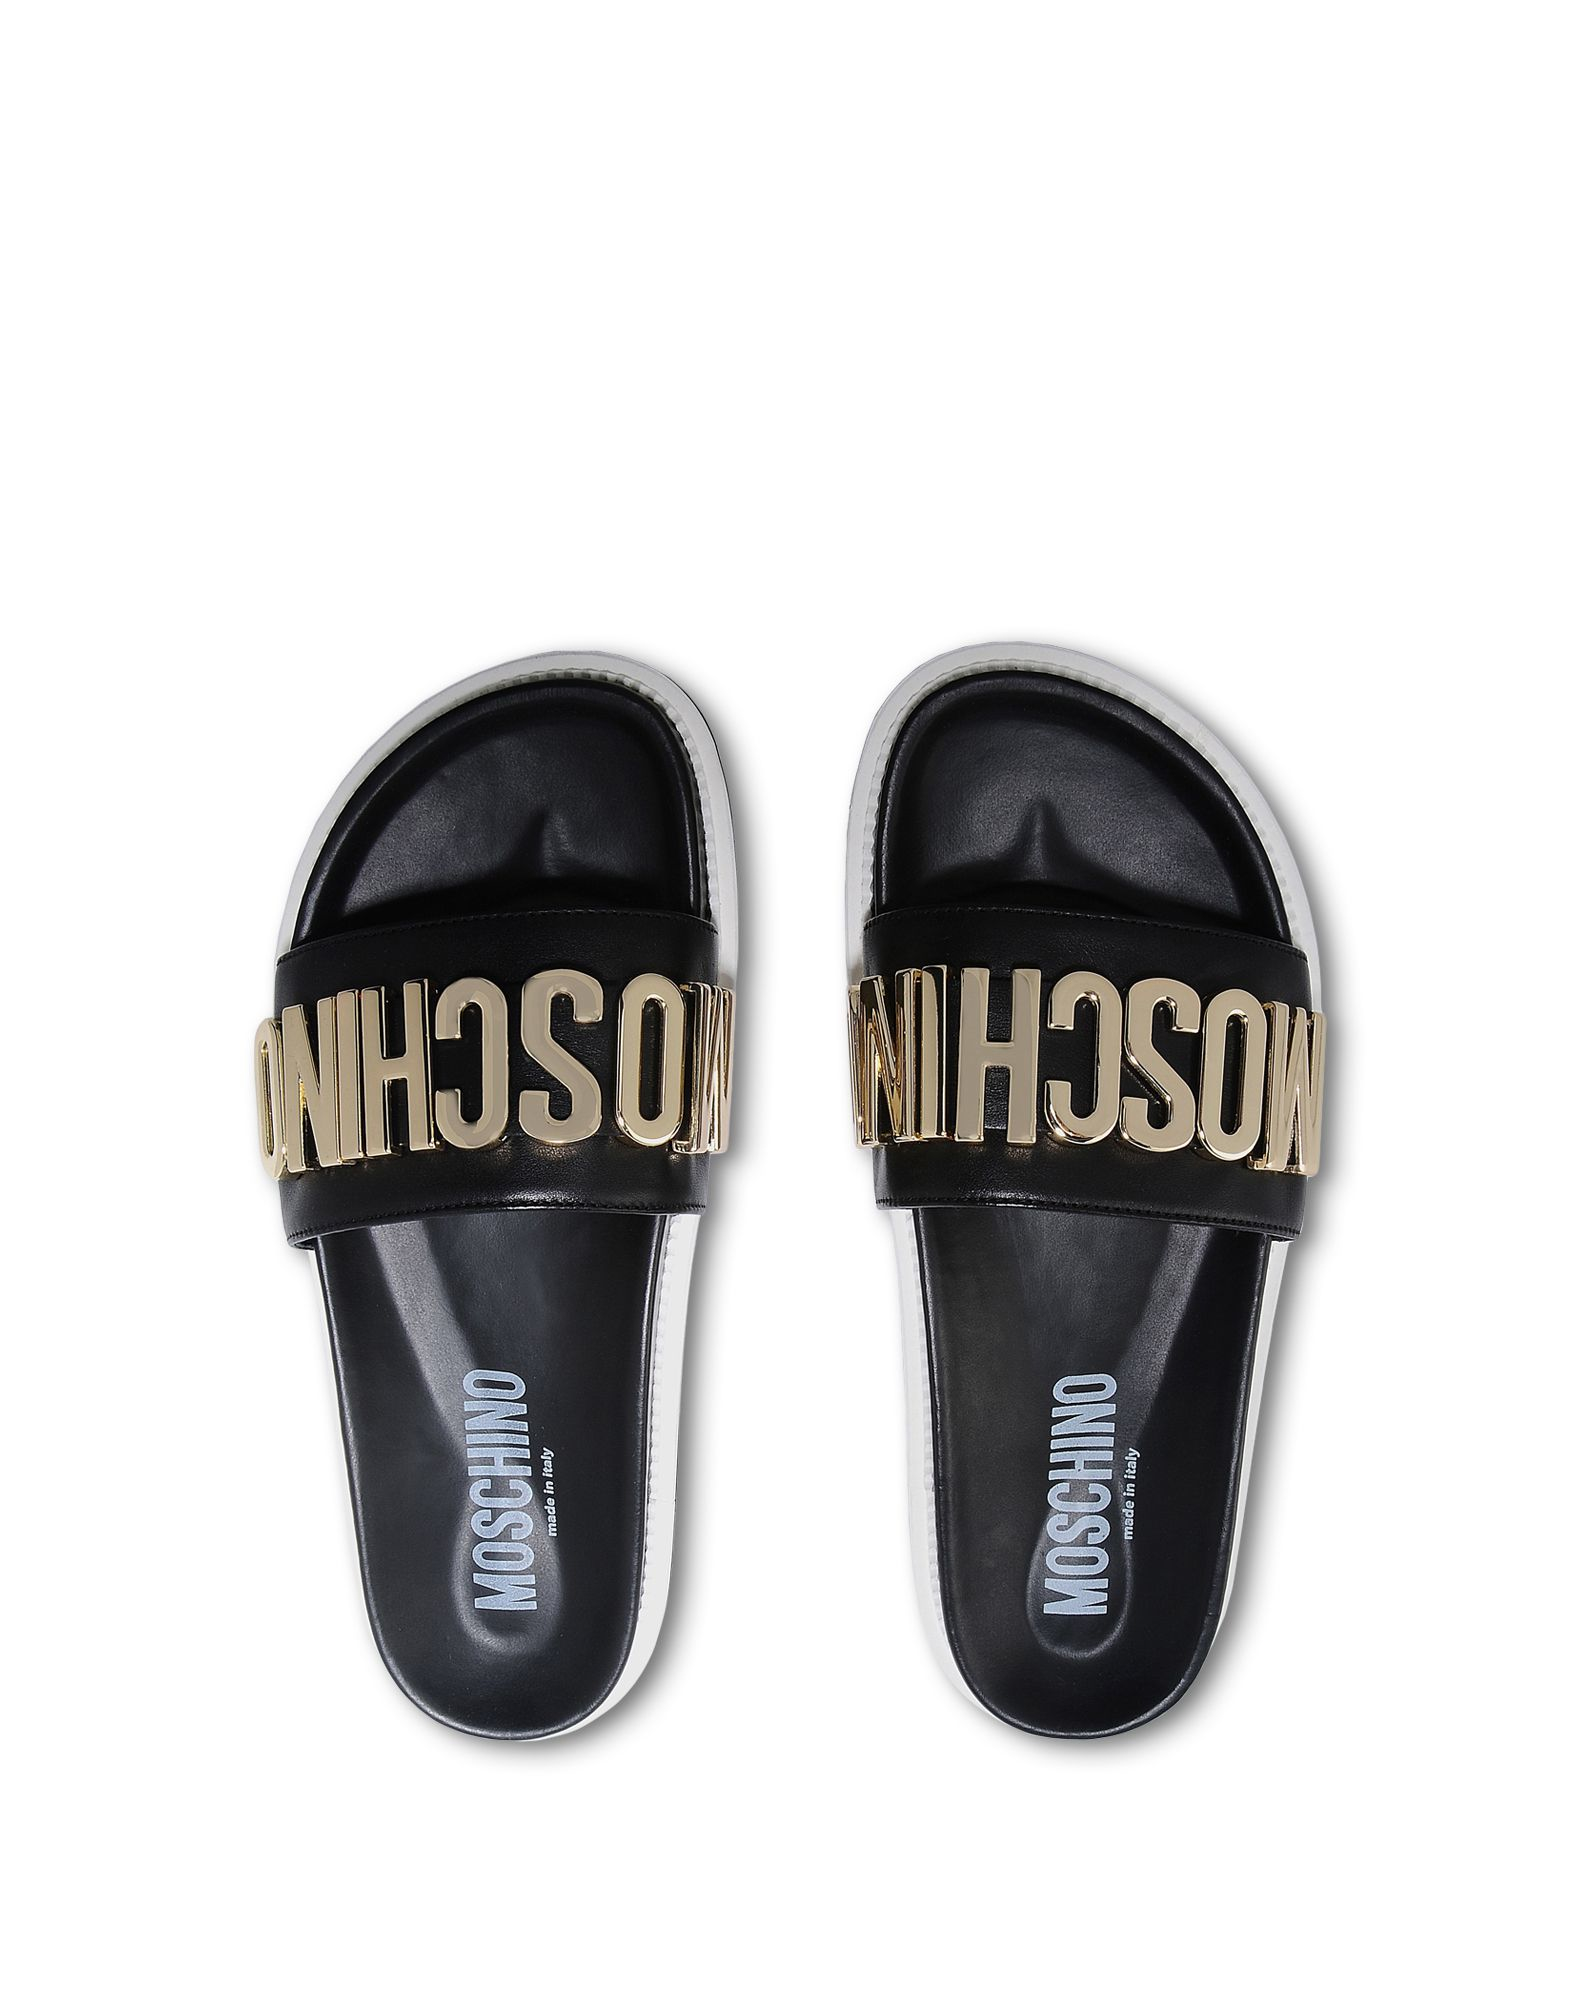 Moschino Monogramme Leather Slides In Black For Men Lyst